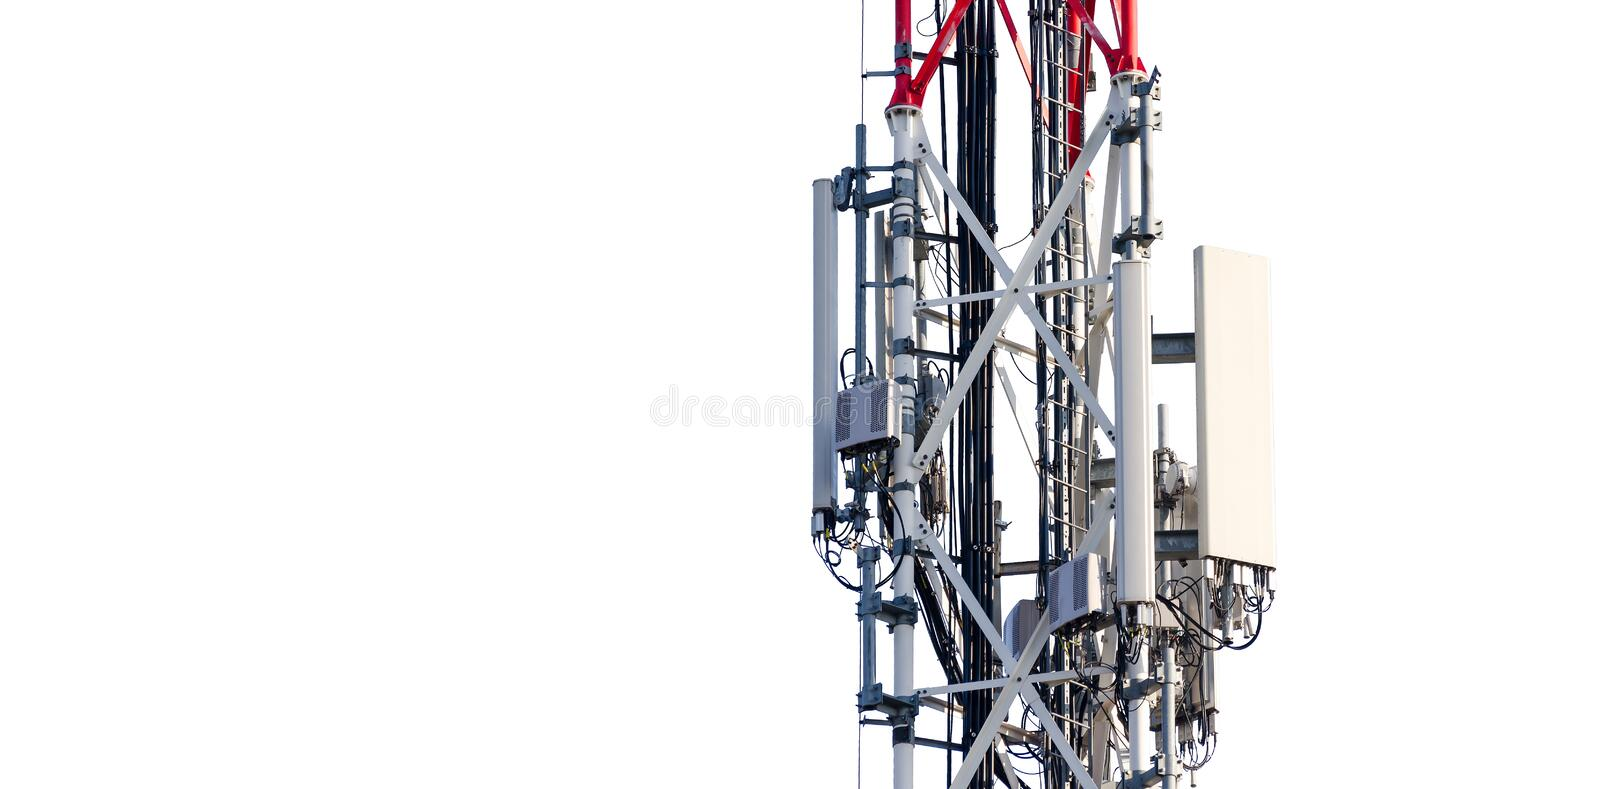 Telecommunication tower antenna with transmitters on metal pole partially isolated on white background.  royalty free stock photo